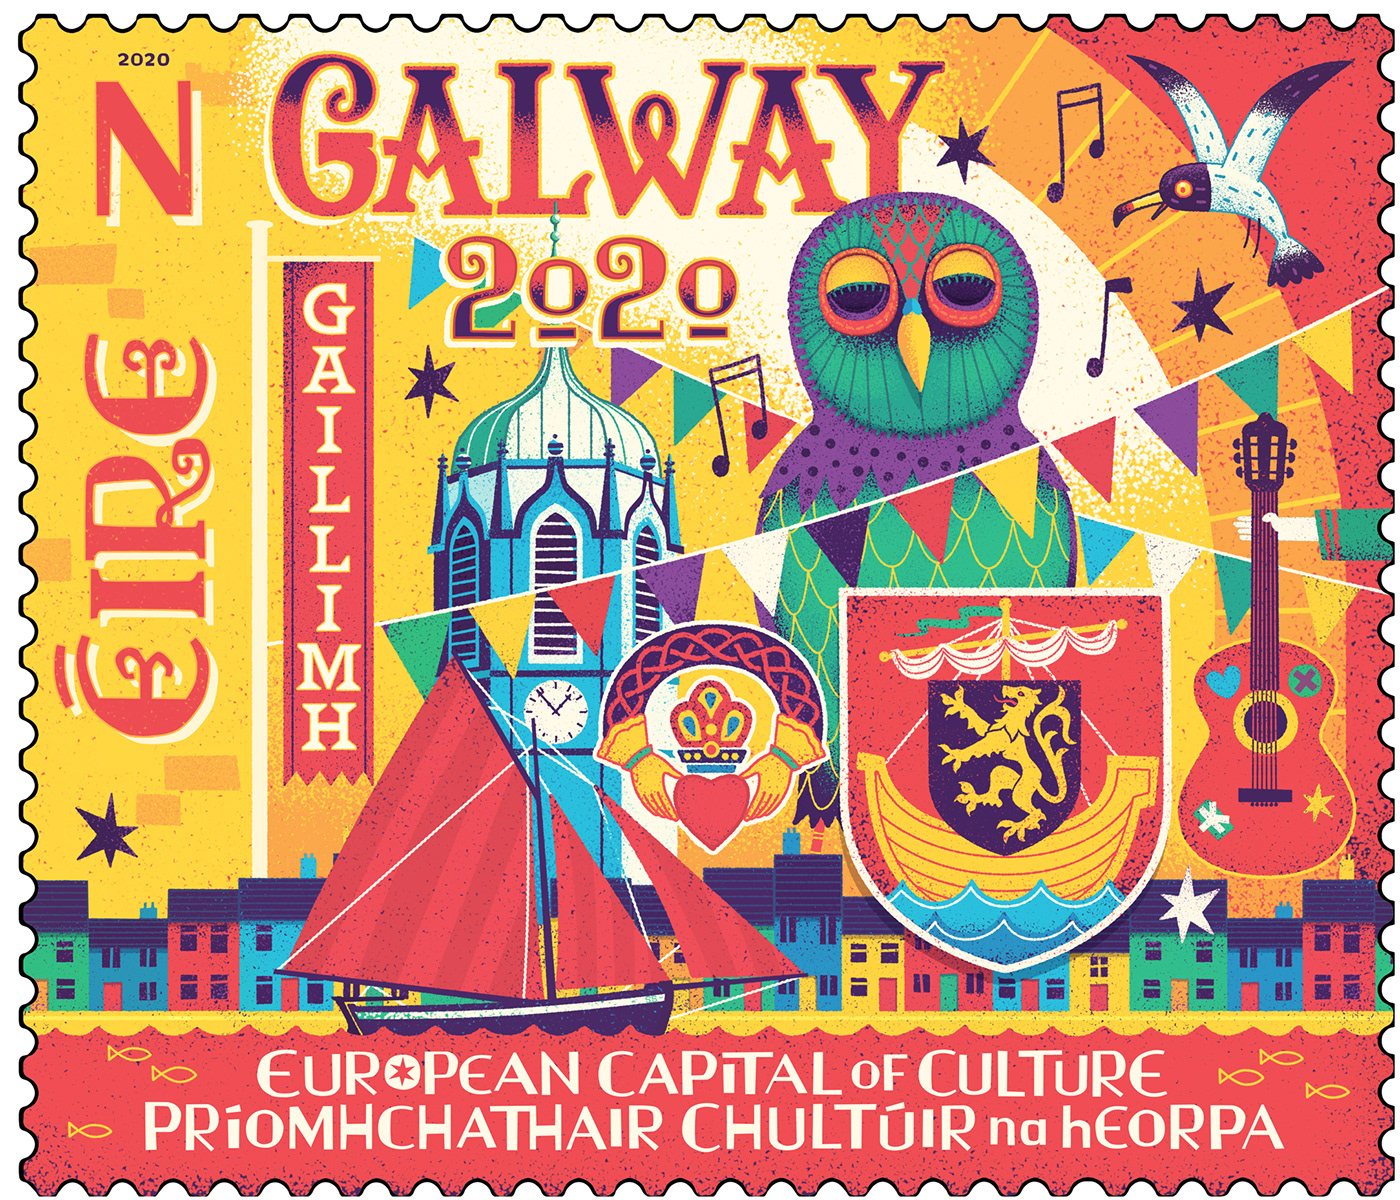 stamp,Galway,map,illustrated,HAND LETTERING,music,buildings,busker,Ireland,irish